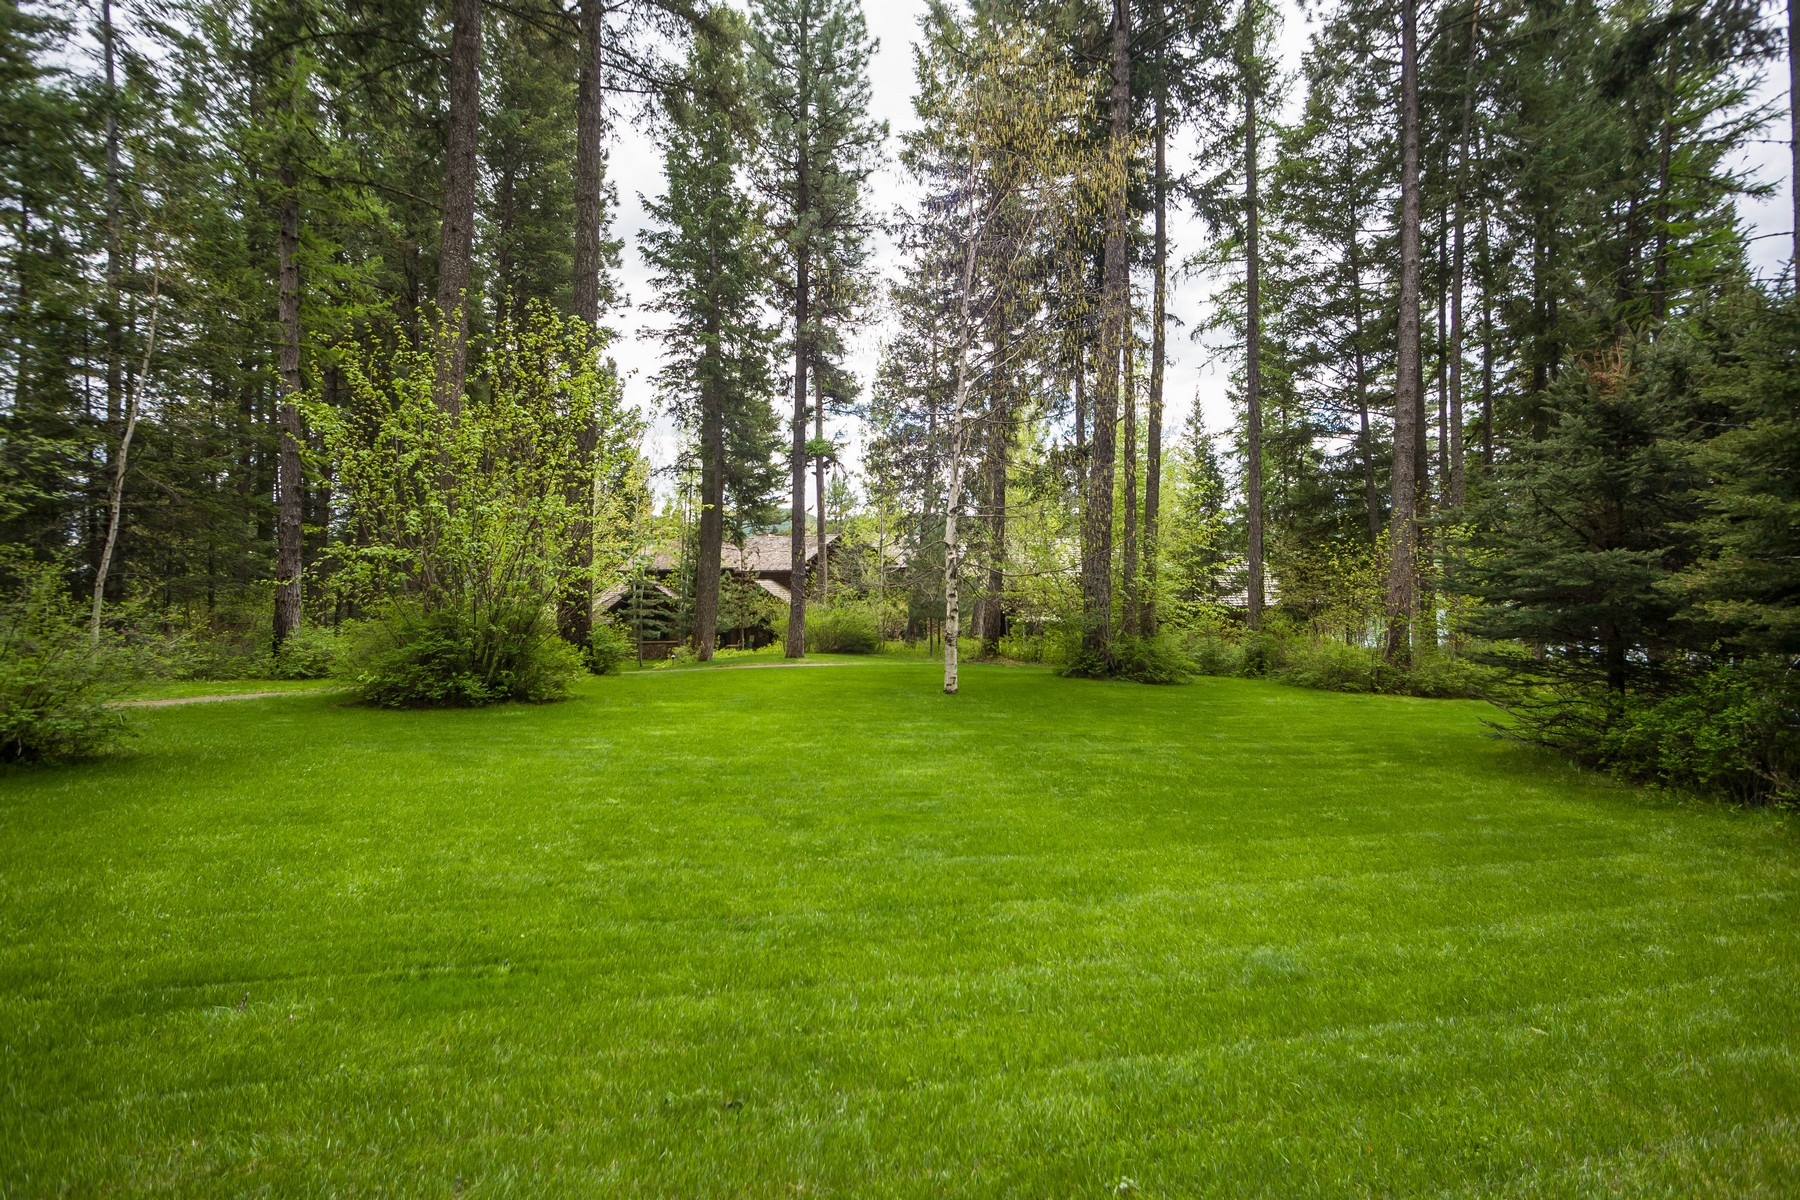 Additional photo for property listing at 3542 E Lakeshore Drive  Whitefish, Montana 59937 United States